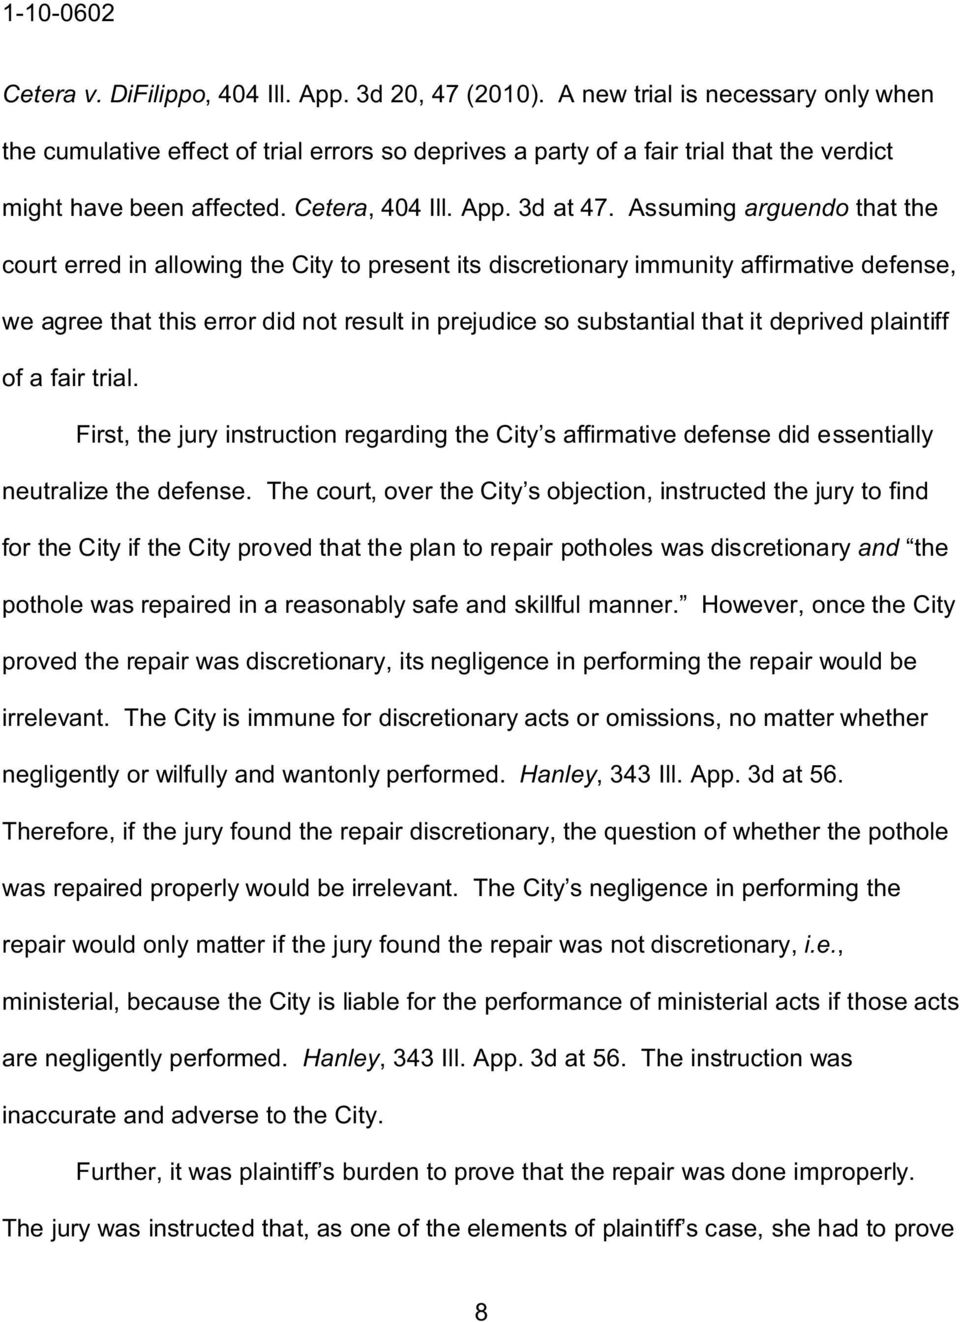 Assuming arguendo that the court erred in allowing the City to present its discretionary immunity affirmative defense, we agree that this error did not result in prejudice so substantial that it